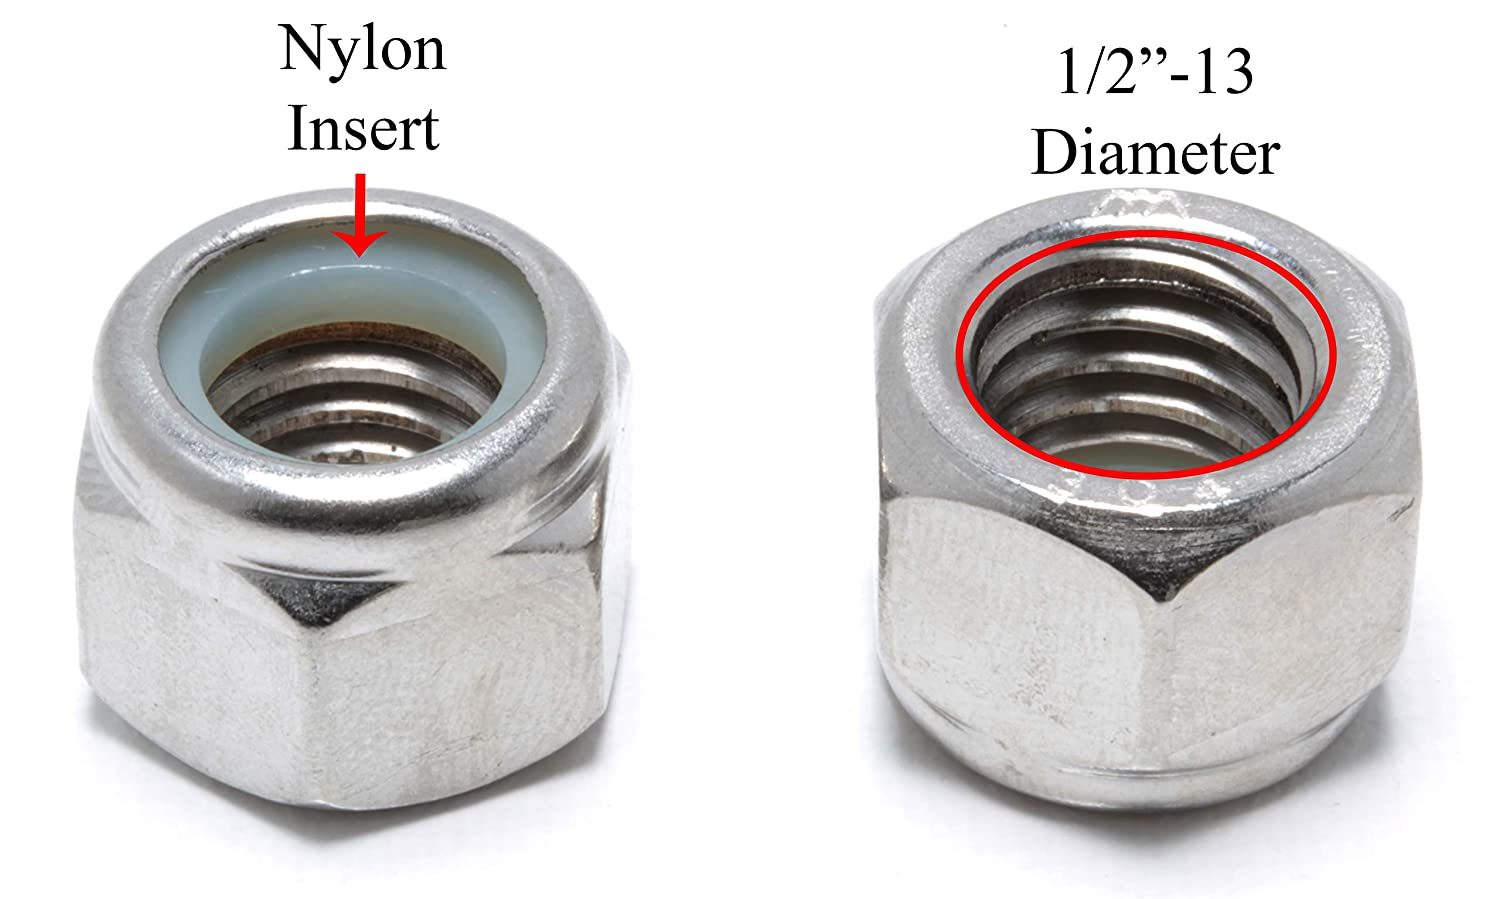 Stainless Steel Lock Nuts #4-40 Stainless Hex Lock Nut 304 100 Pack 18-8 by Bolt Dropper